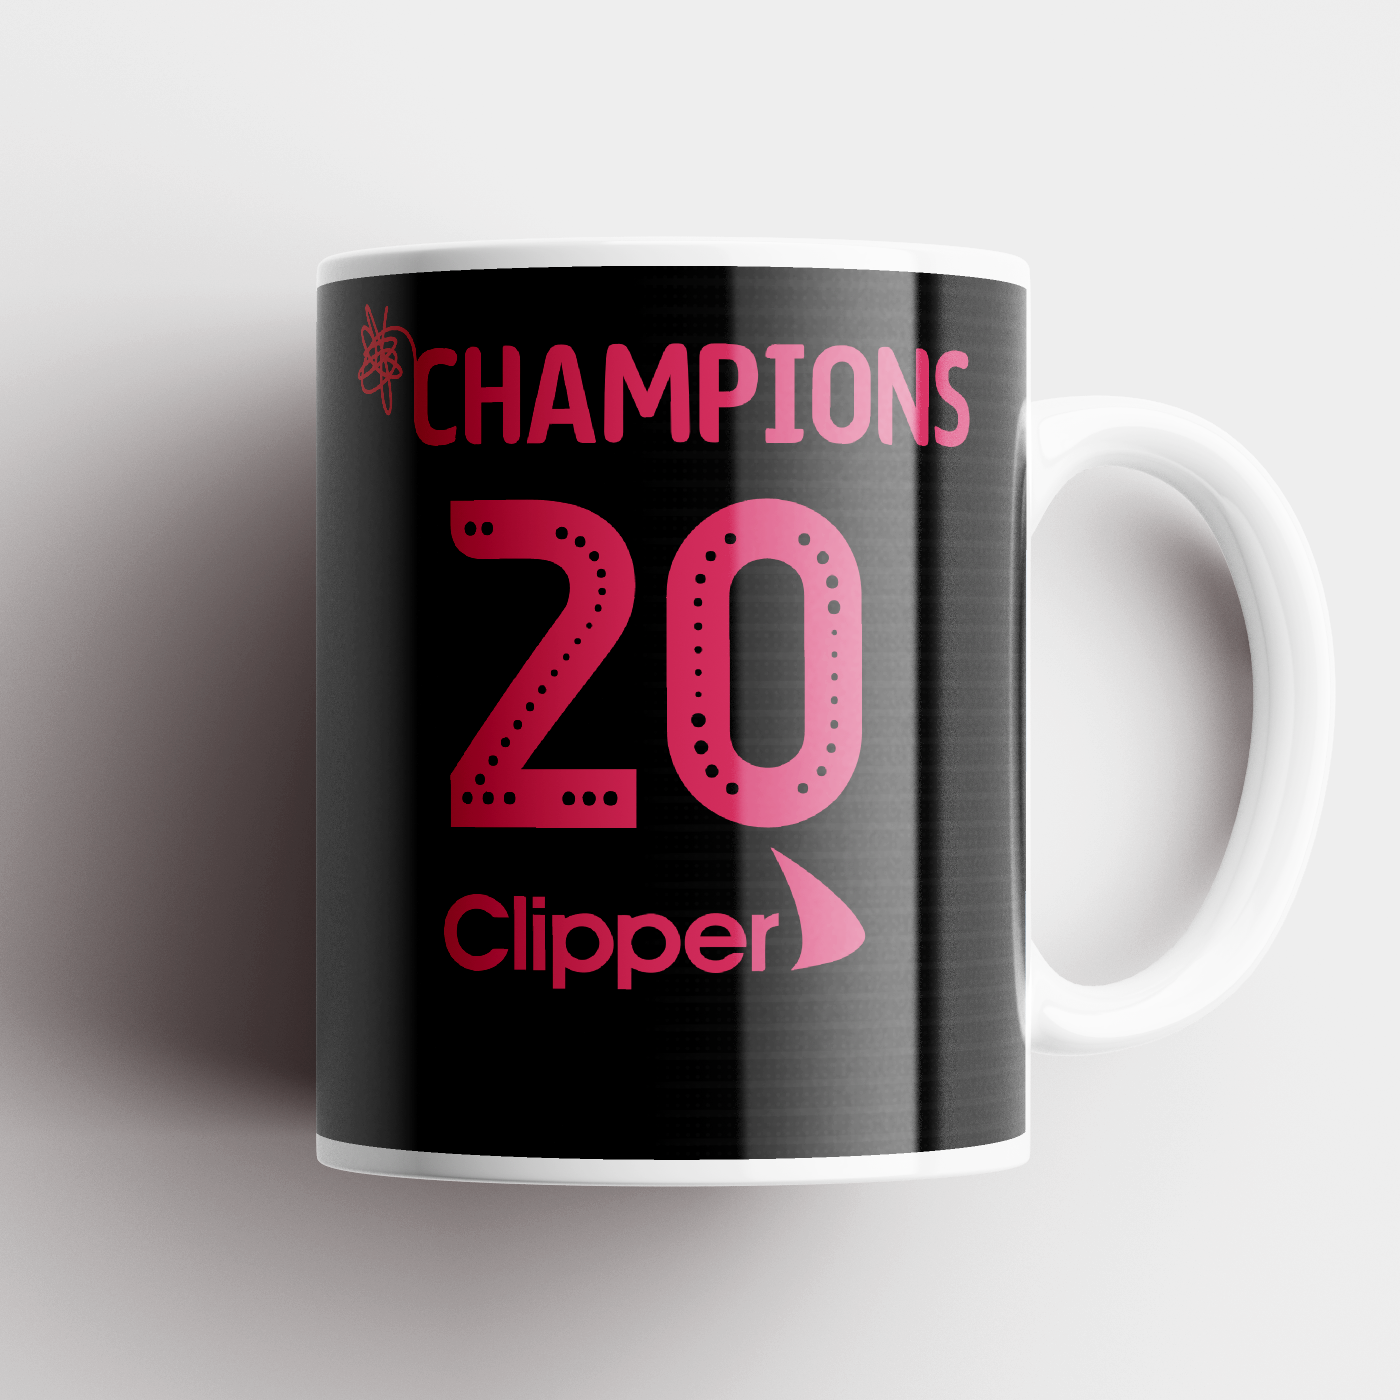 LEEDS INSPIRED CHAMPIONS CERAMIC MUG 2020 AWAY